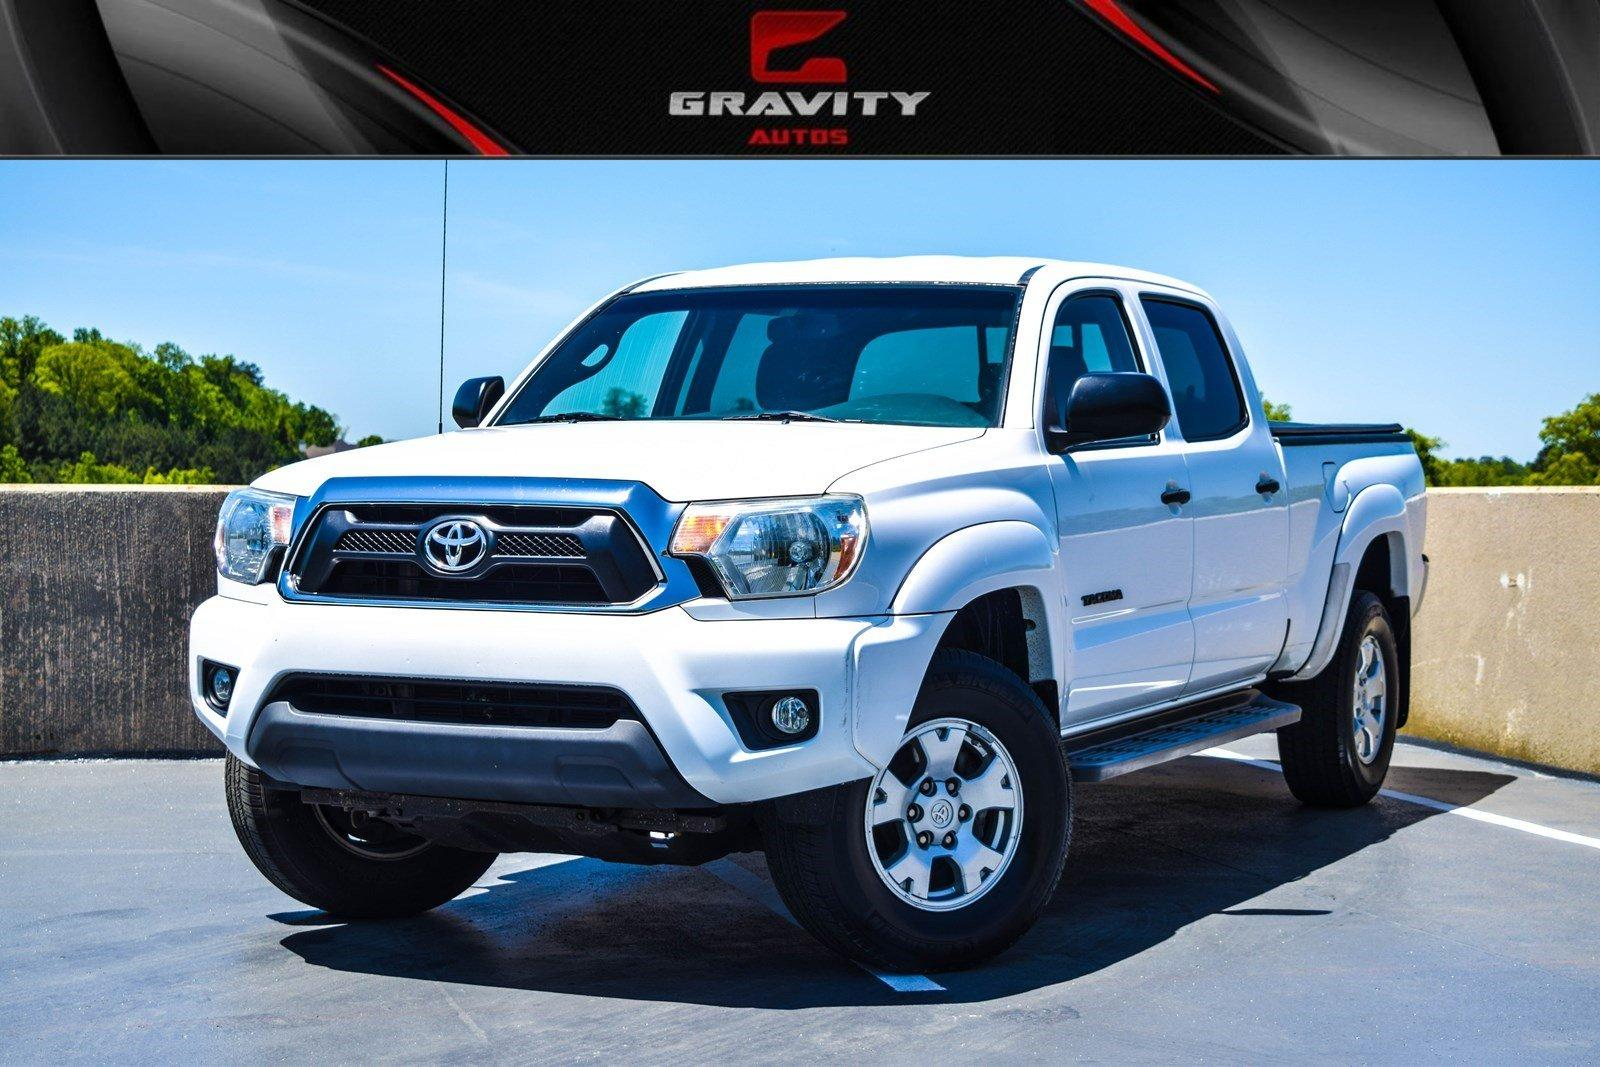 2012 Toyota Tacoma Prerunner Stock 002184 For Sale Near